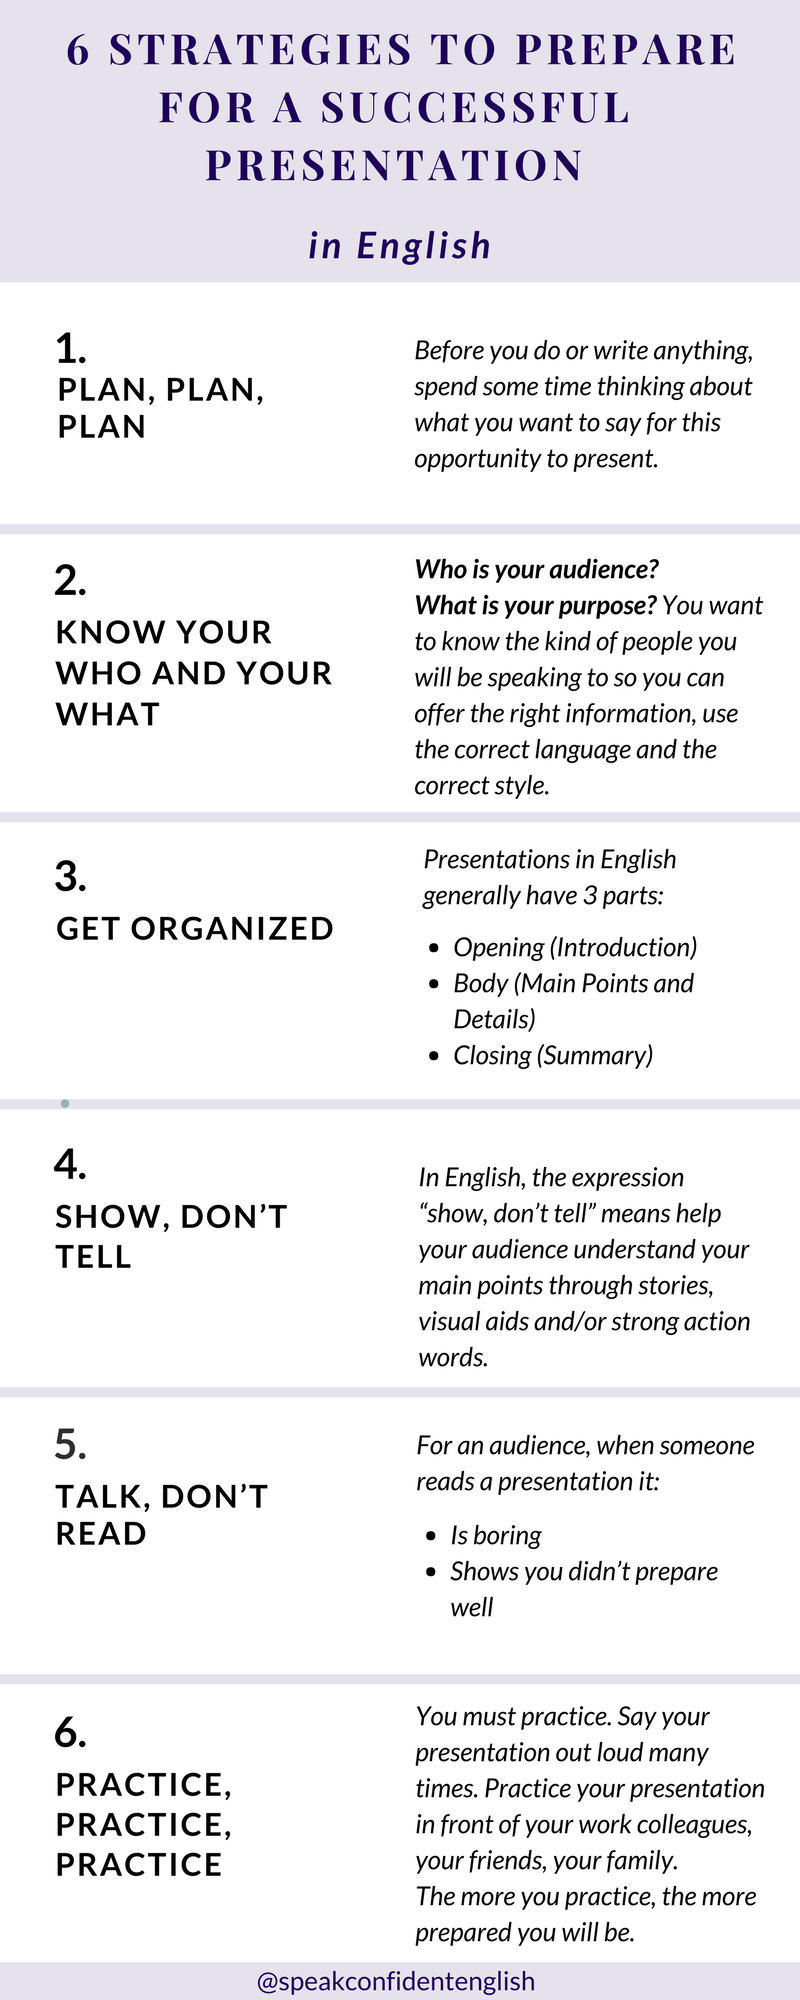 Professional English. Some easy to follow steps on how to prepare